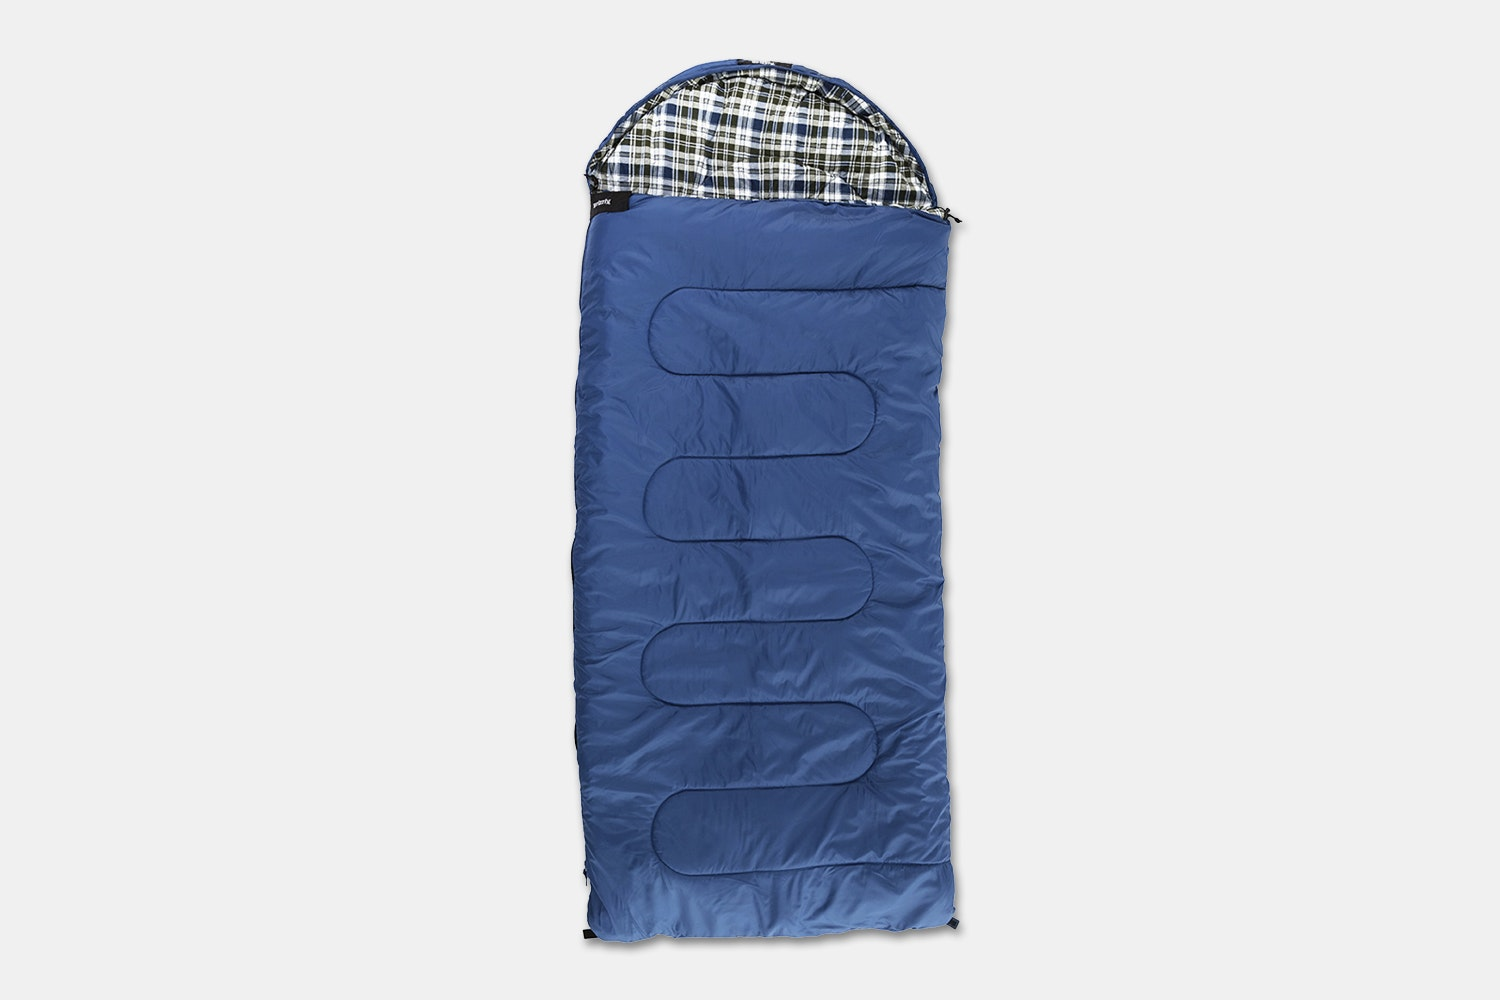 Grizzly – 25 Degree – Ripstop – Slate Blue (+ $5)